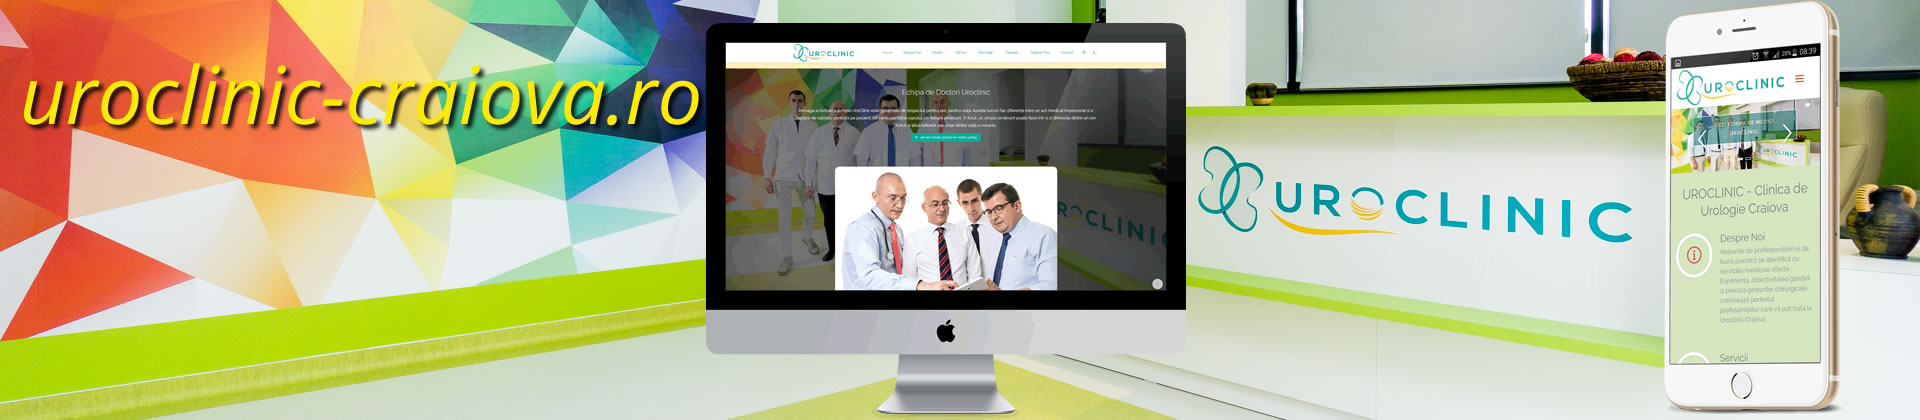 design-website-cabinet-medical-uroclinic-craiova-header